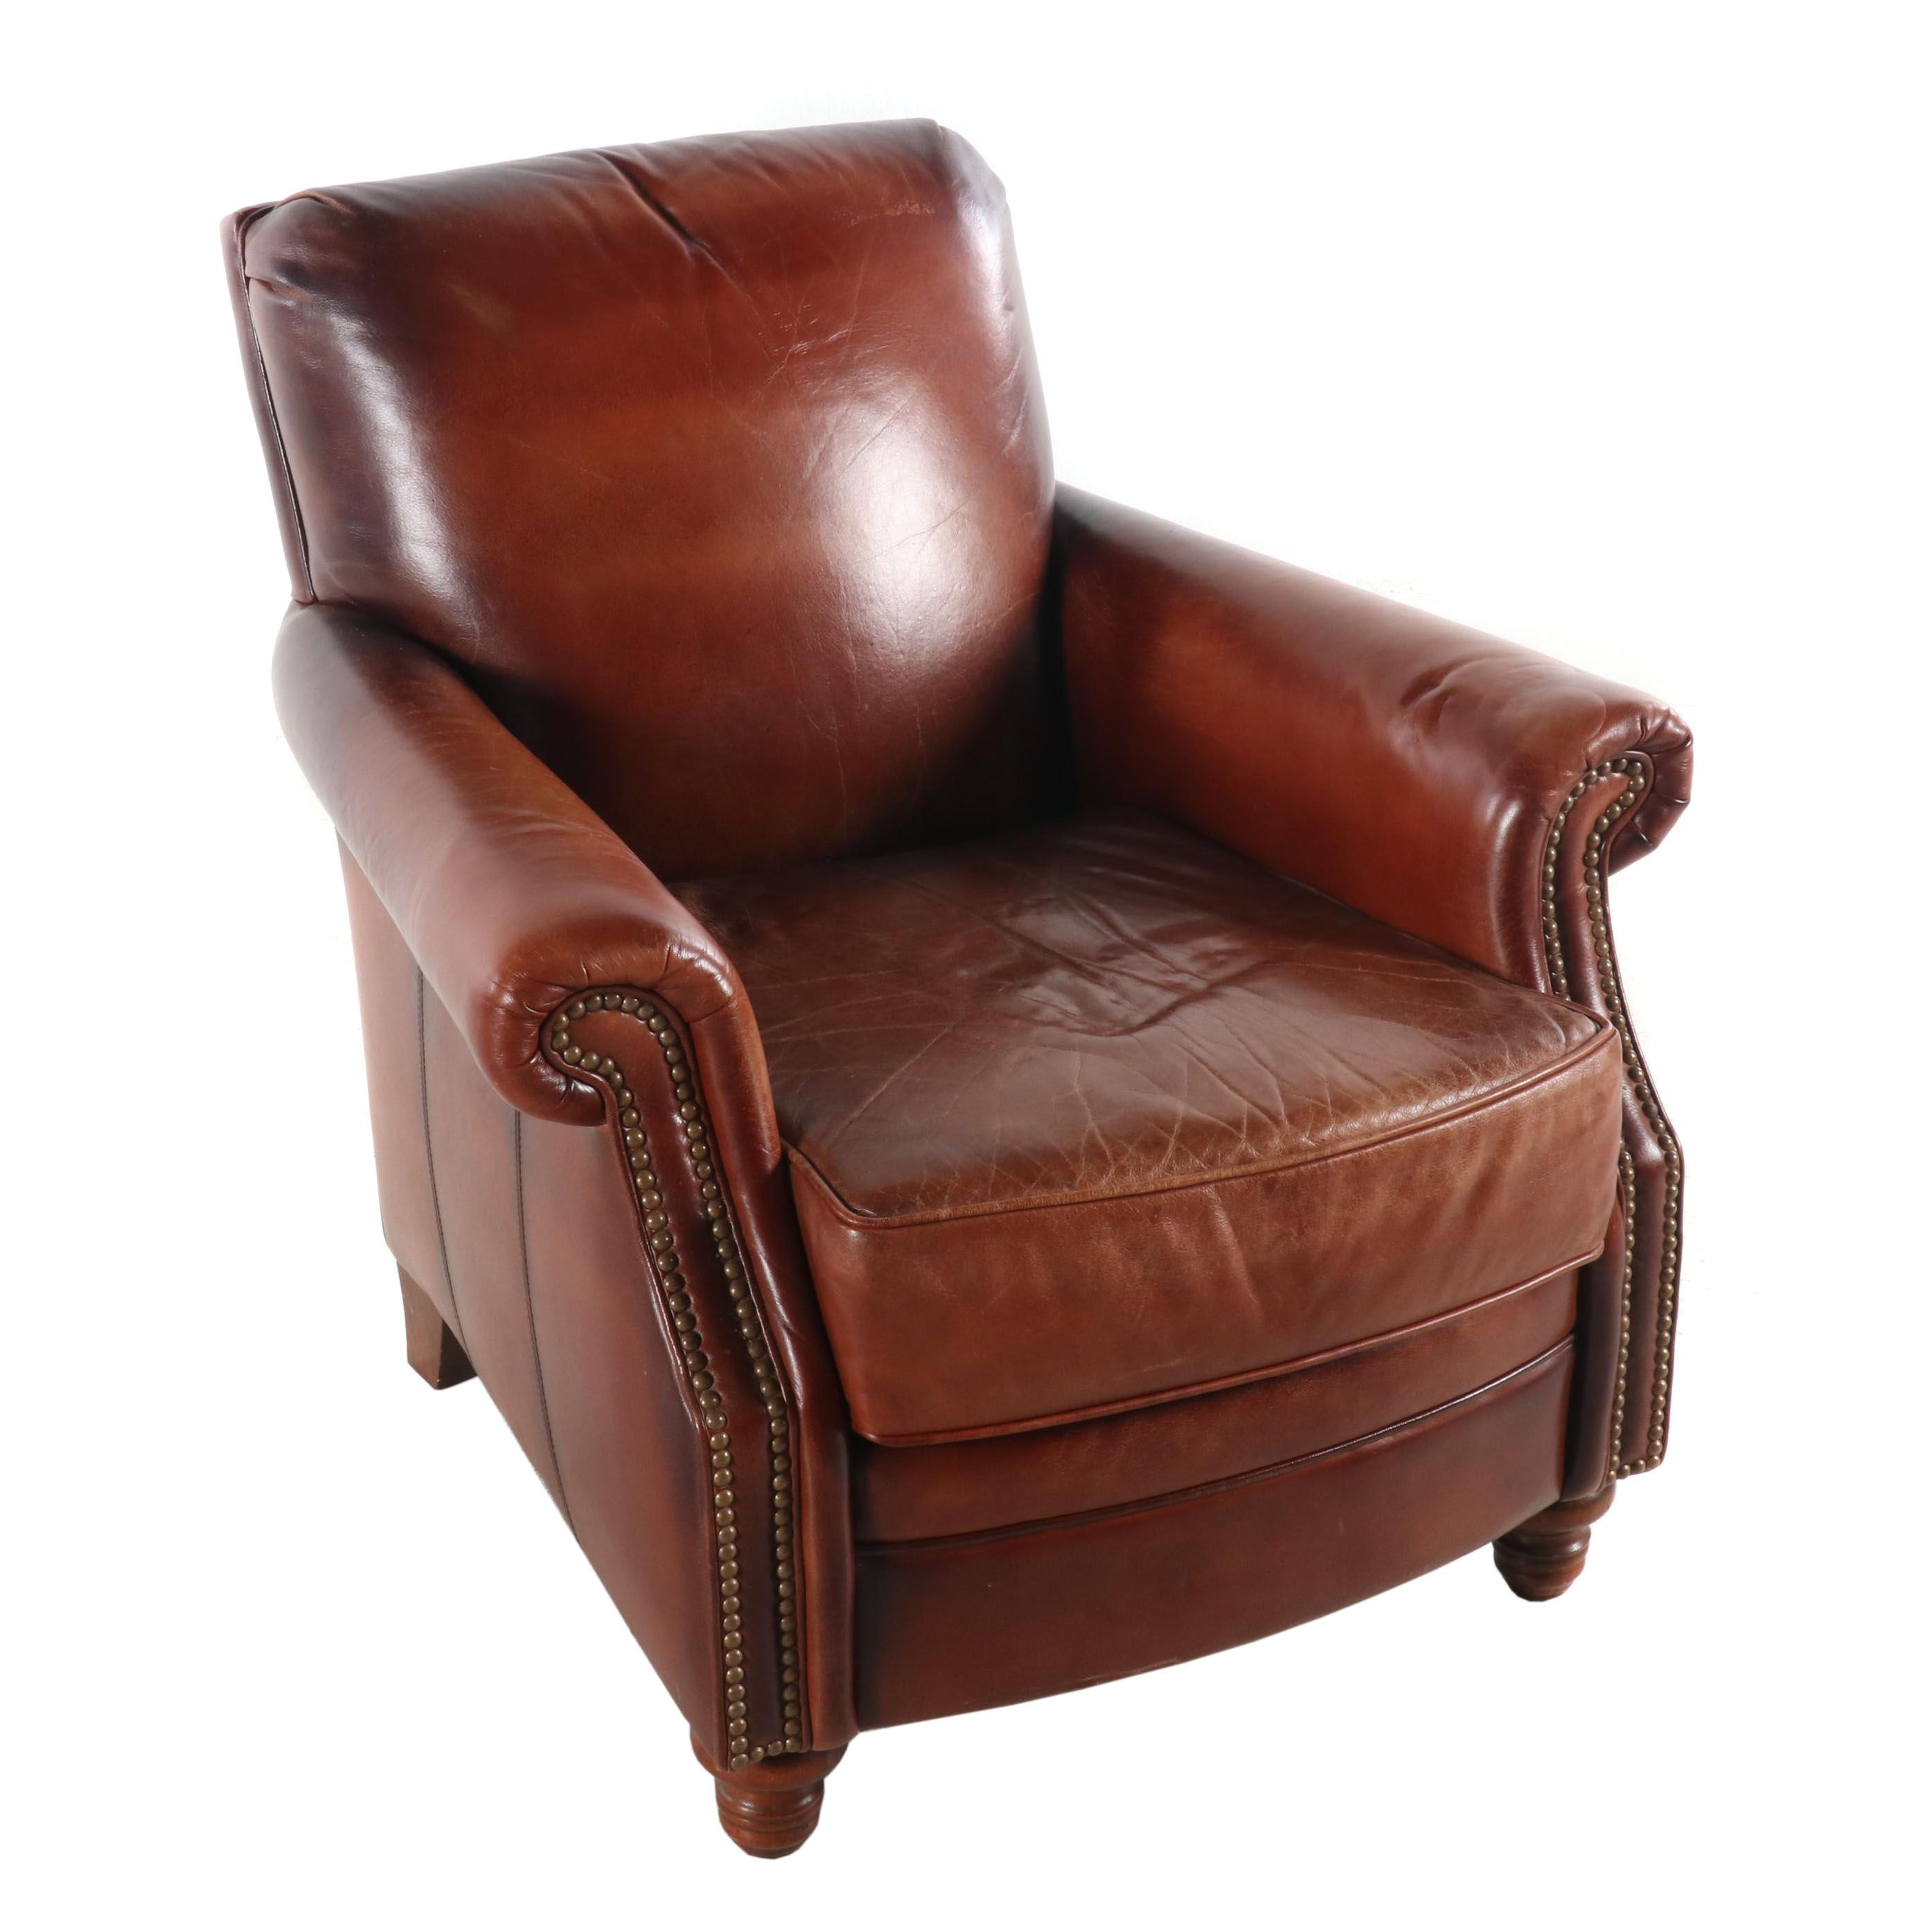 Seven Seas Seating Leather Club Chair, Contemporary